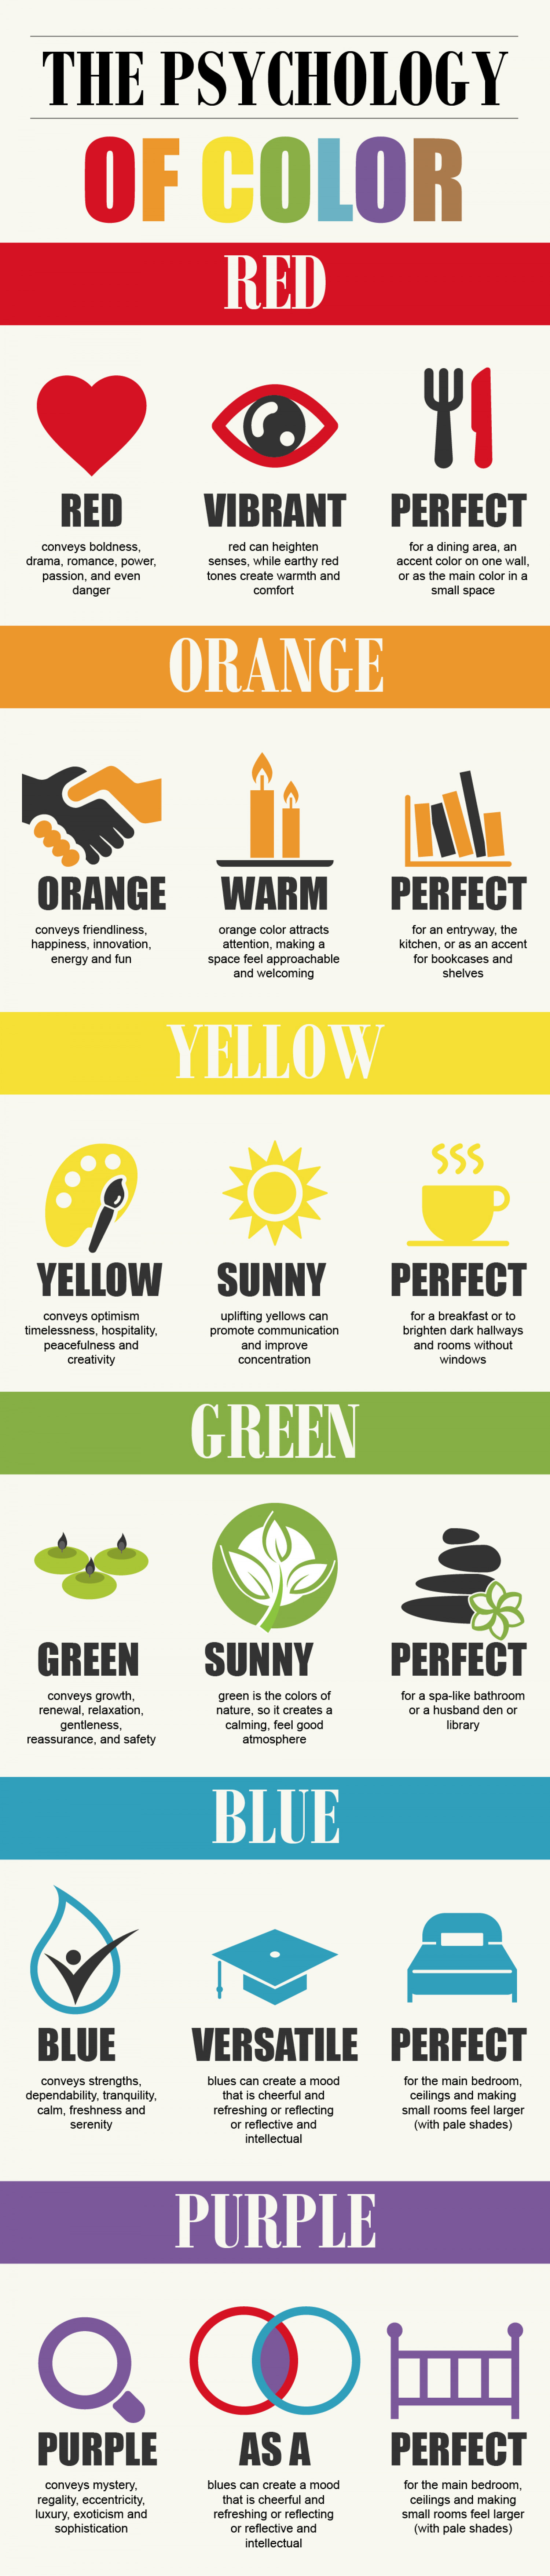 The Psychology Of Colors In Marketing And Branding   Visual.ly